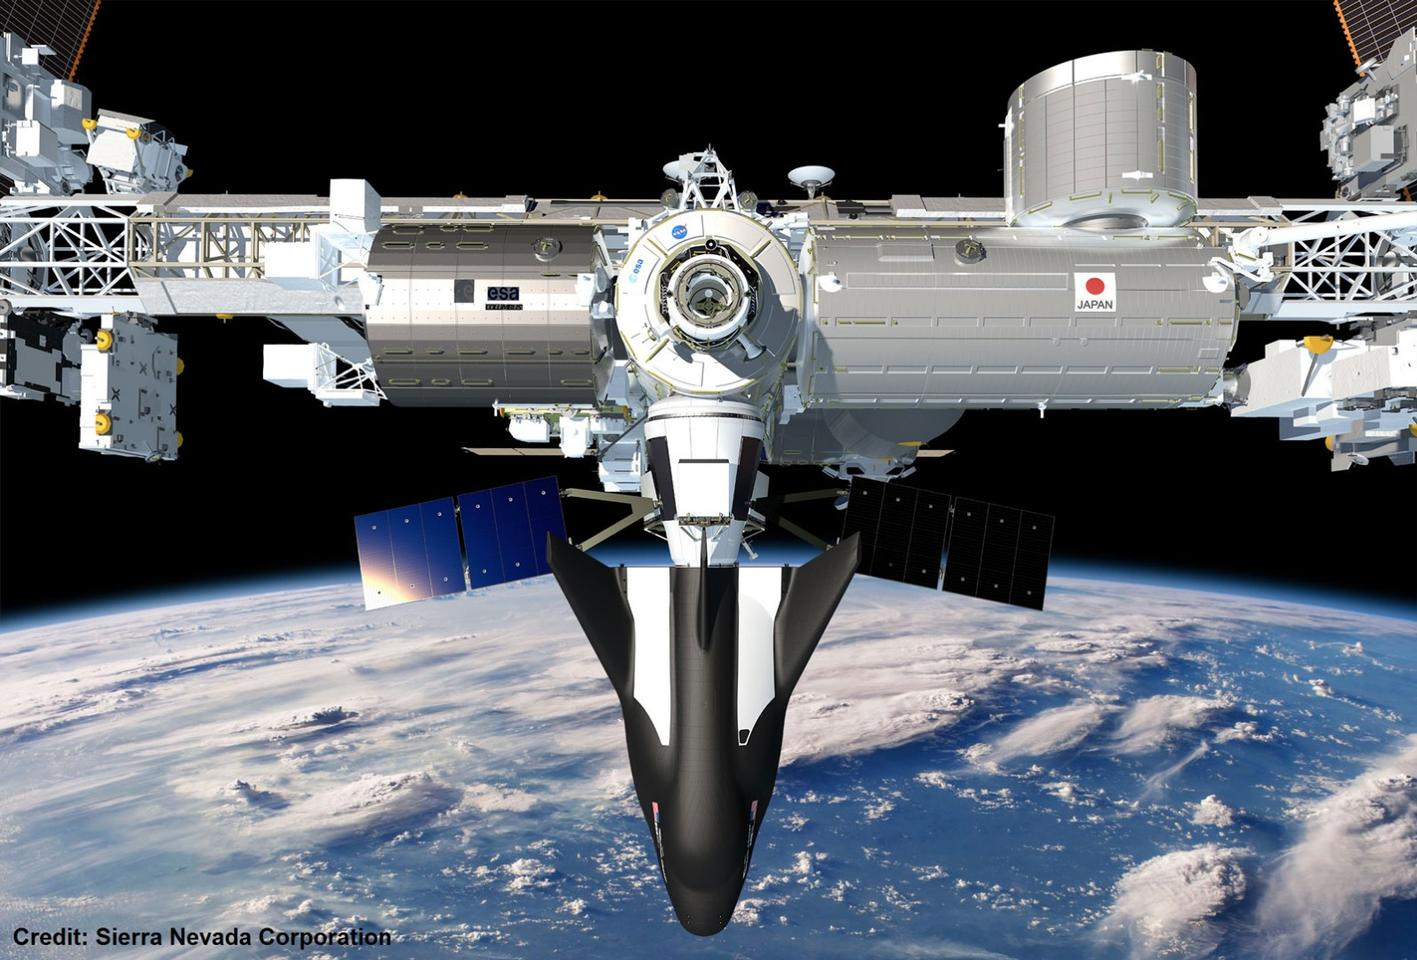 Artist'srenderingof theDream Chaser spacecraft docked on the ISS